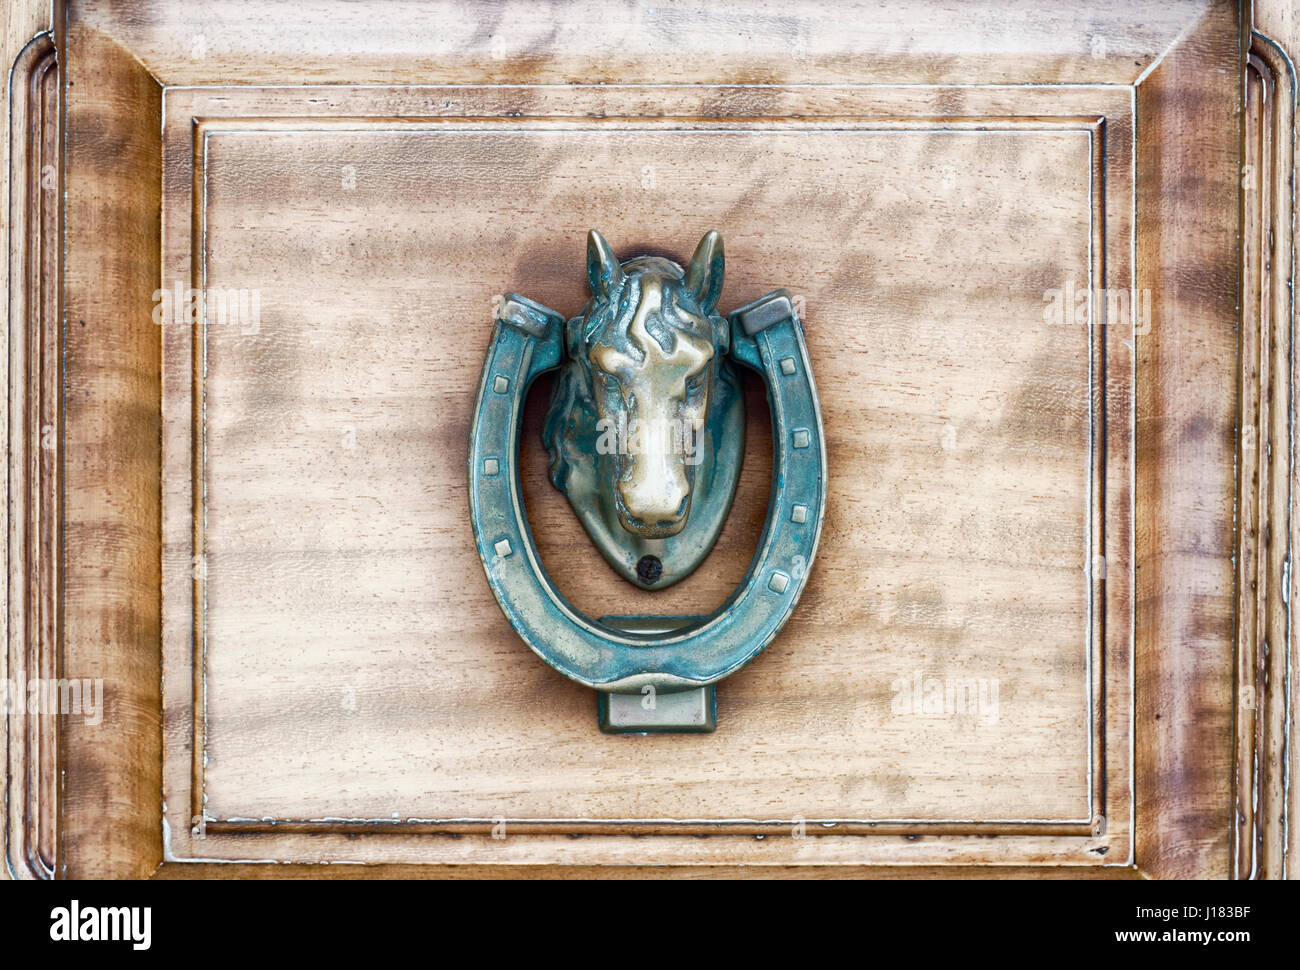 Vintage Antiqued Brass Horse Door Knocker - Stock Image